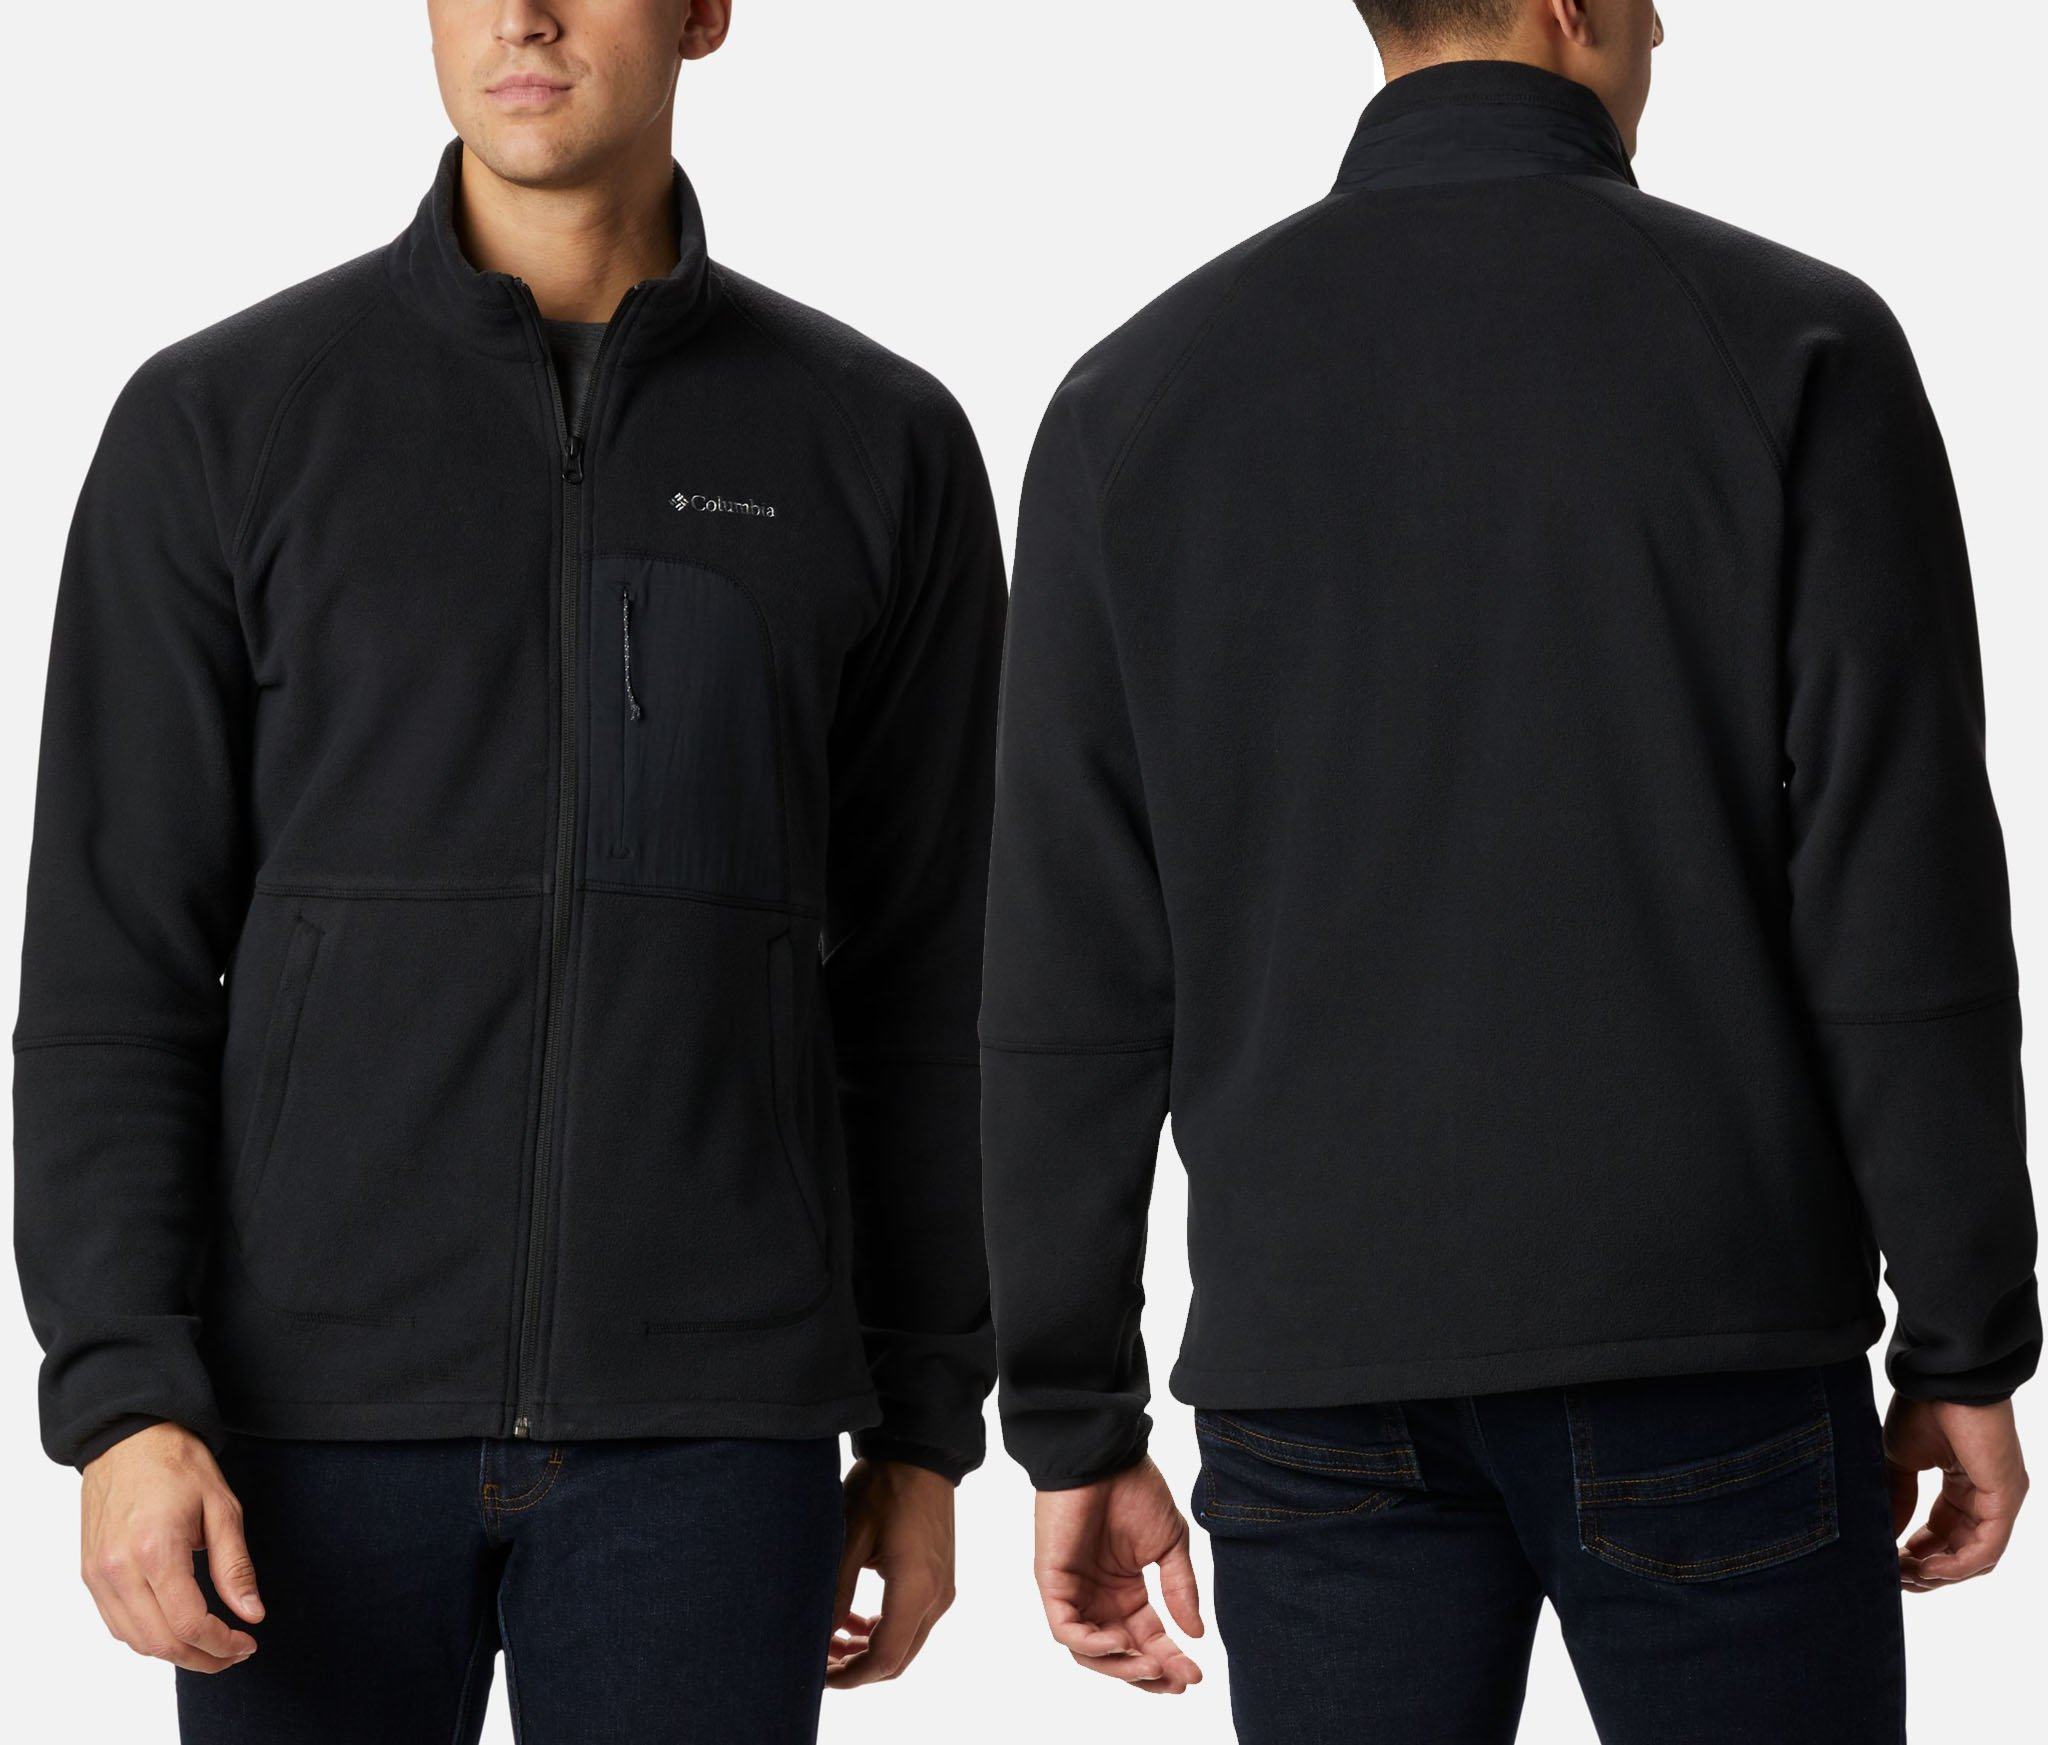 The Rapid Expedition jacket combines design with functionality as it boasts a lot of zipped pockets